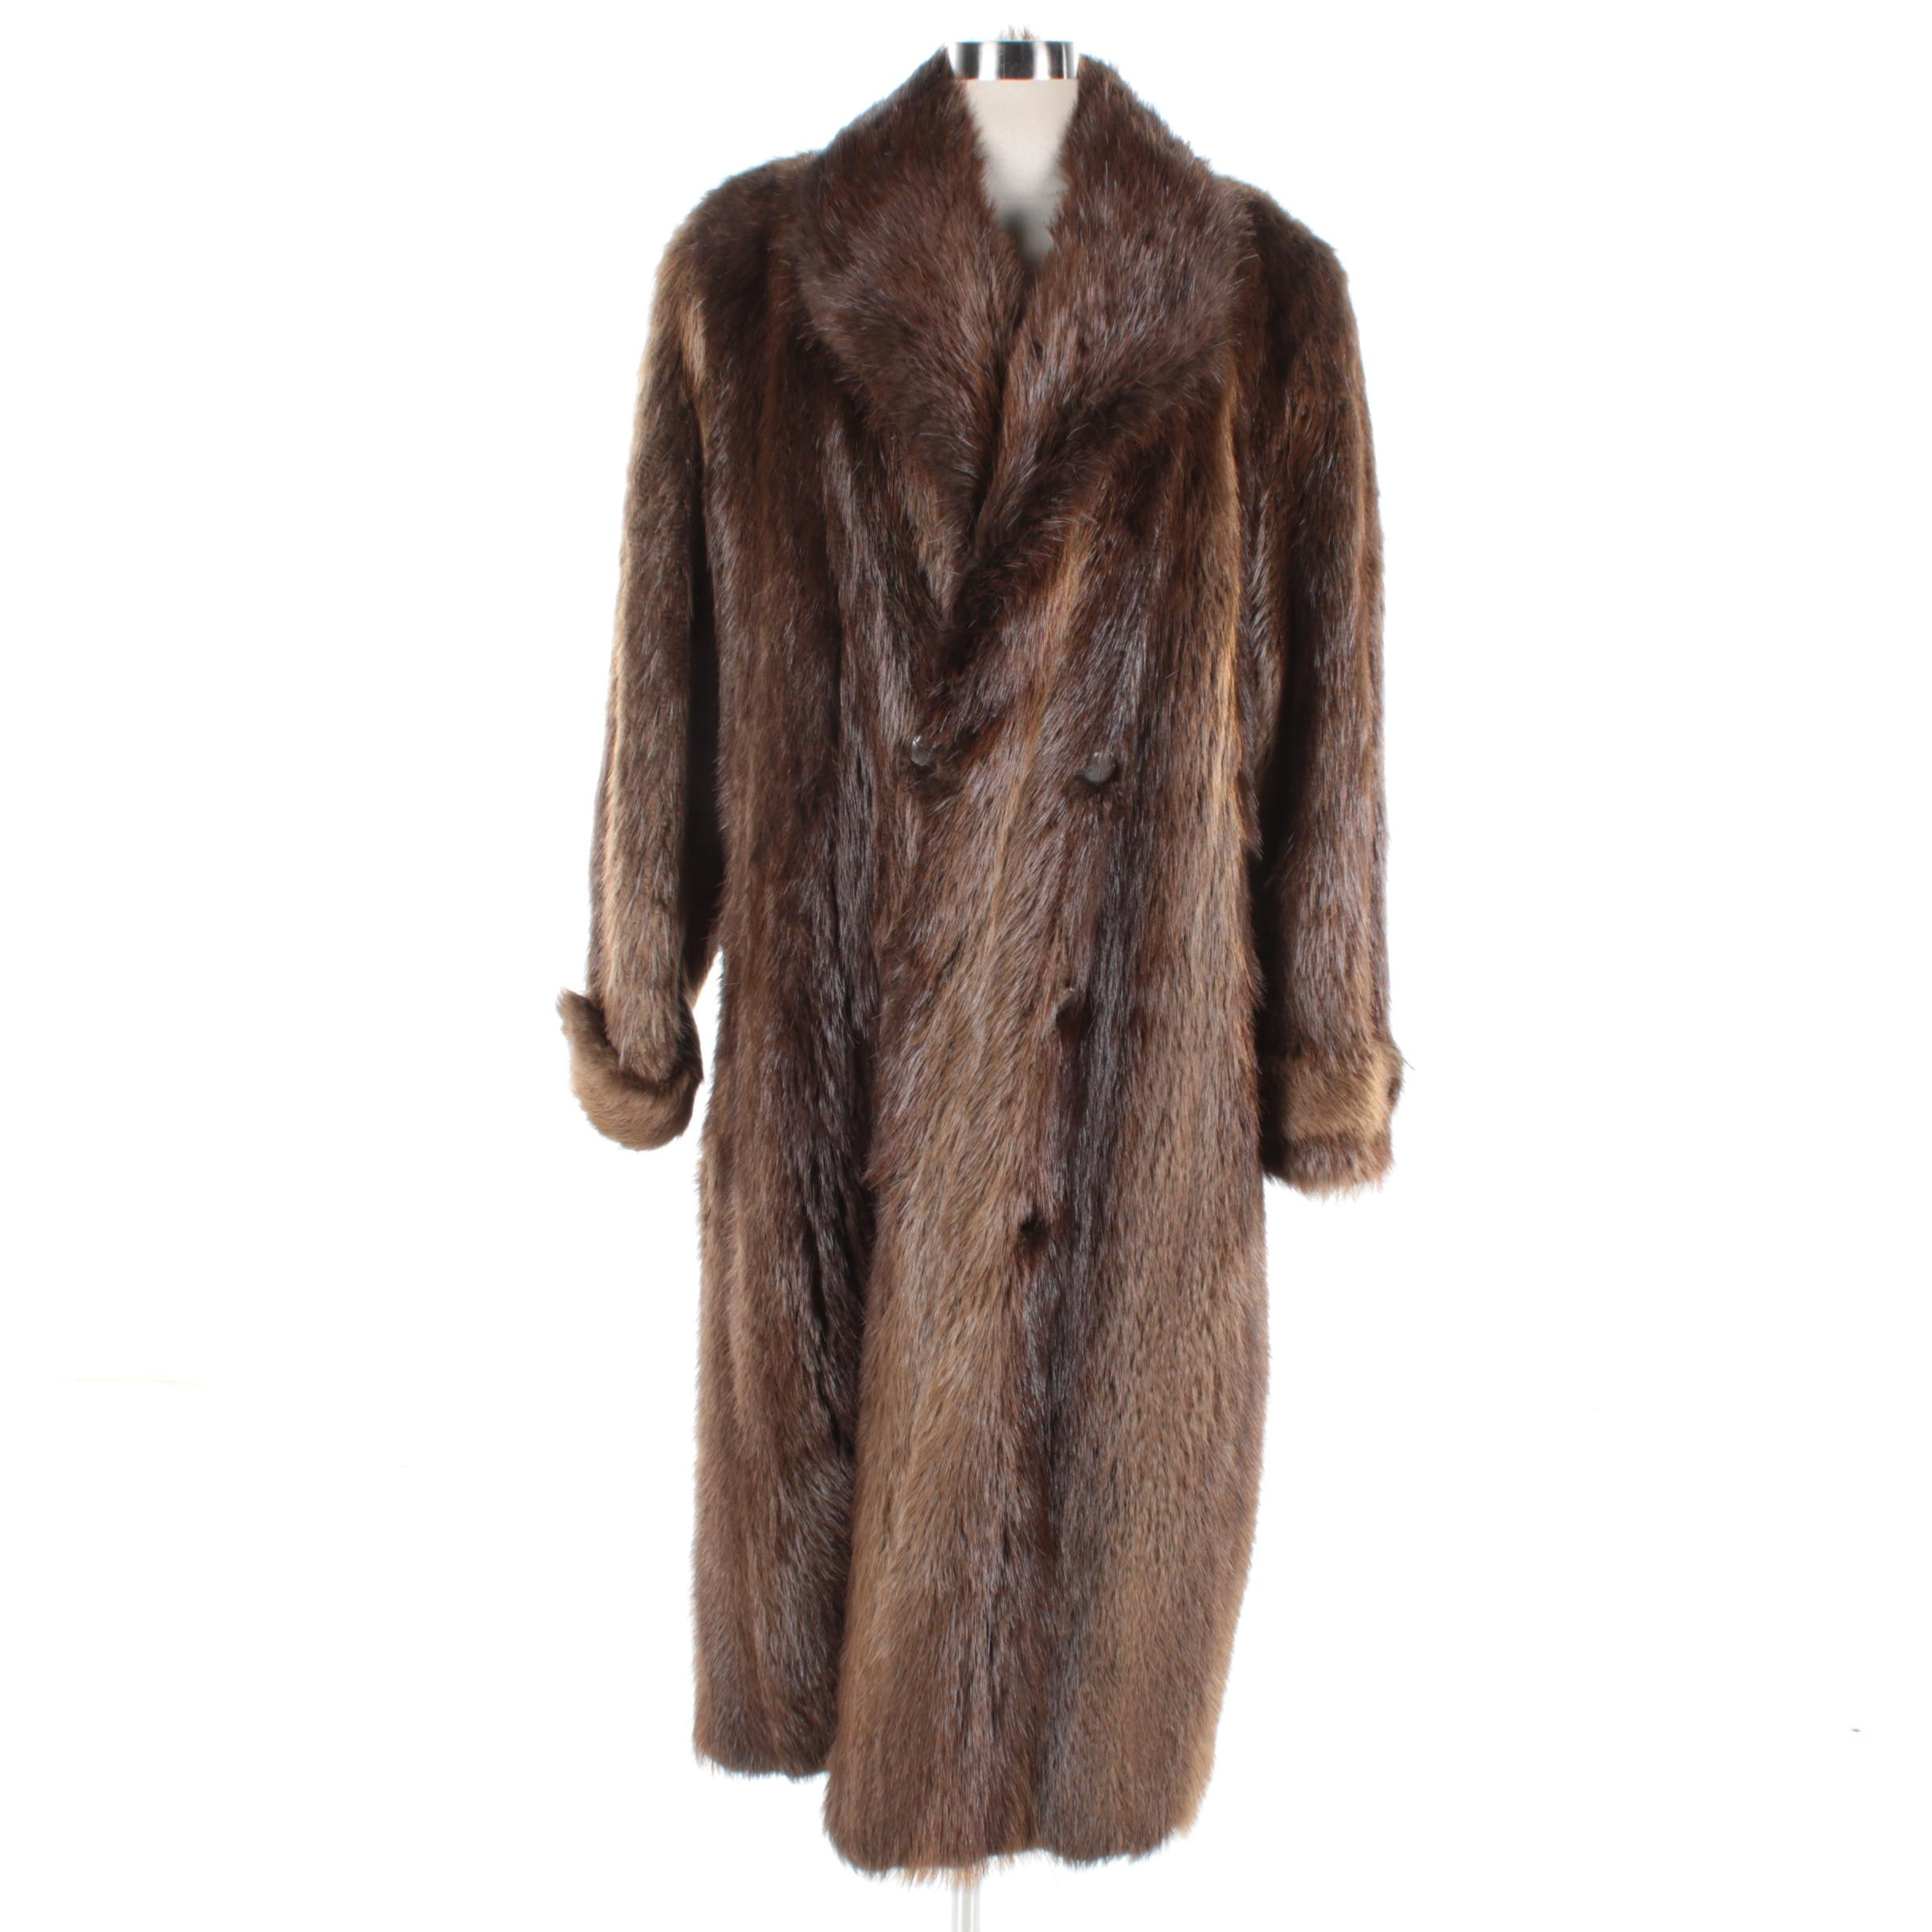 Men's Double-Breasted Beaver Fur Coat